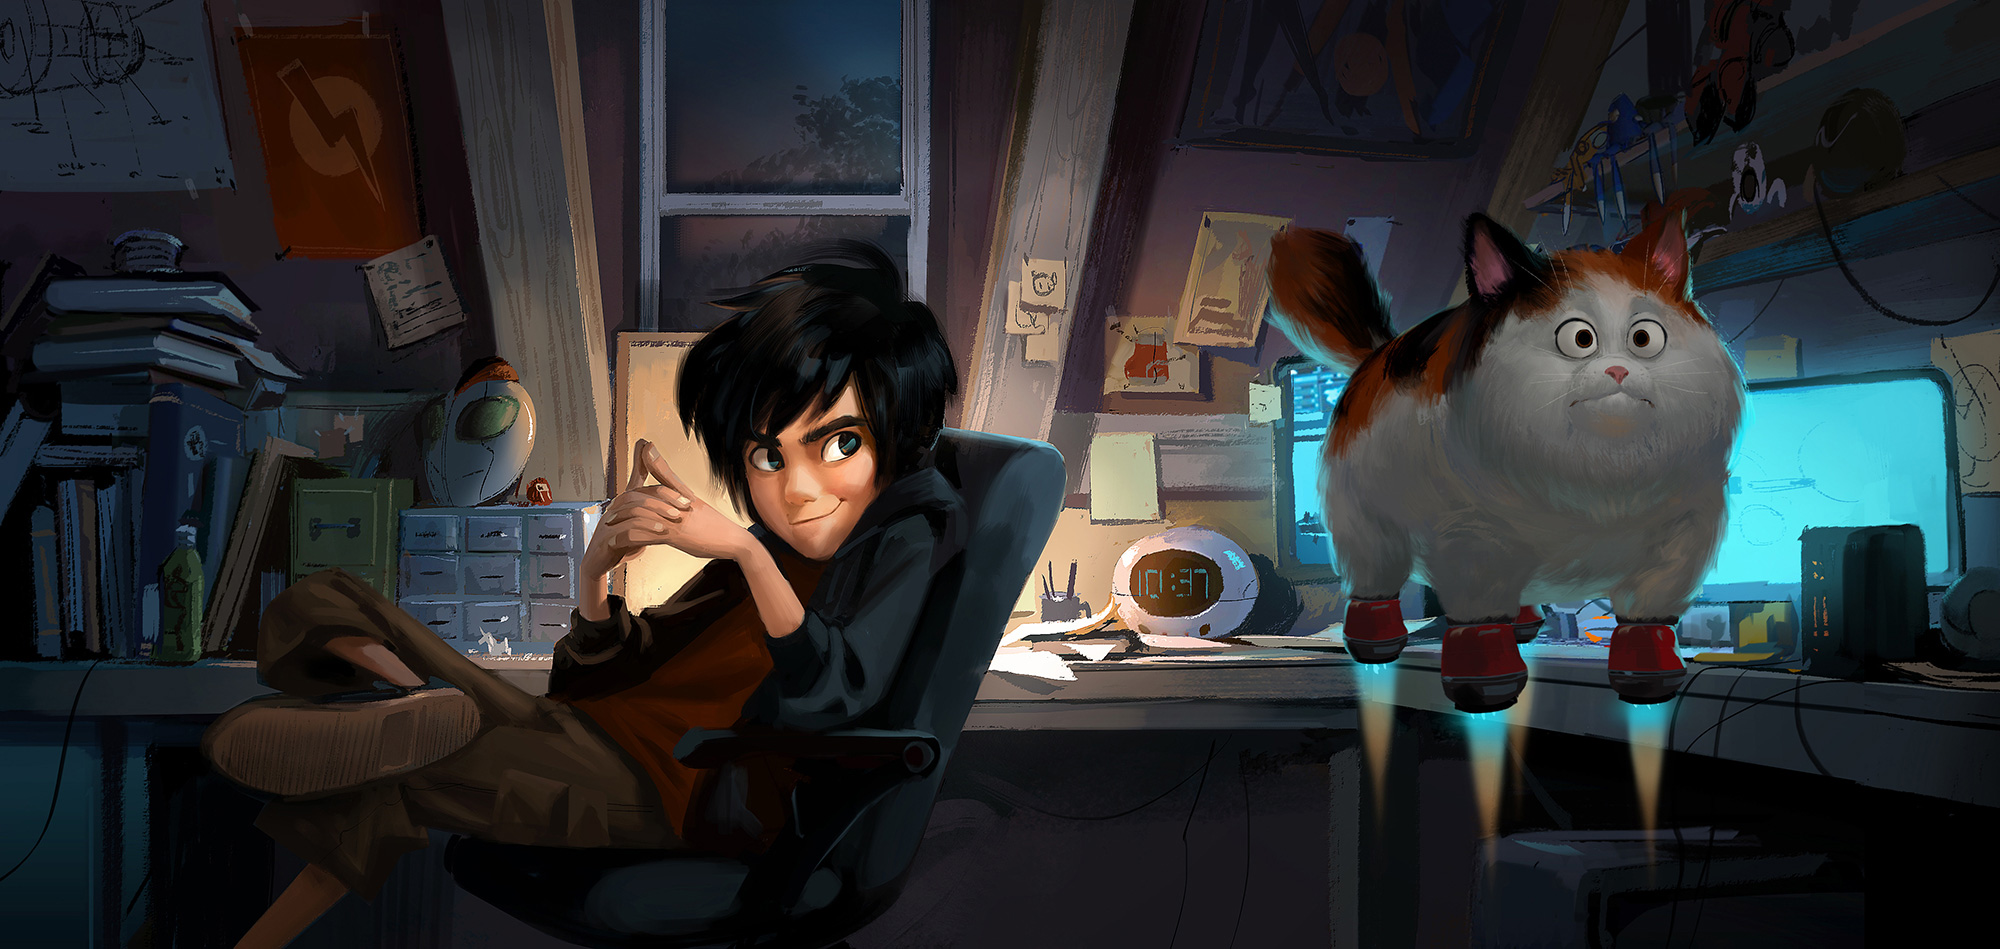 Big Hero 6 Concept Art by Mingjue Helen Chen (6 pics)